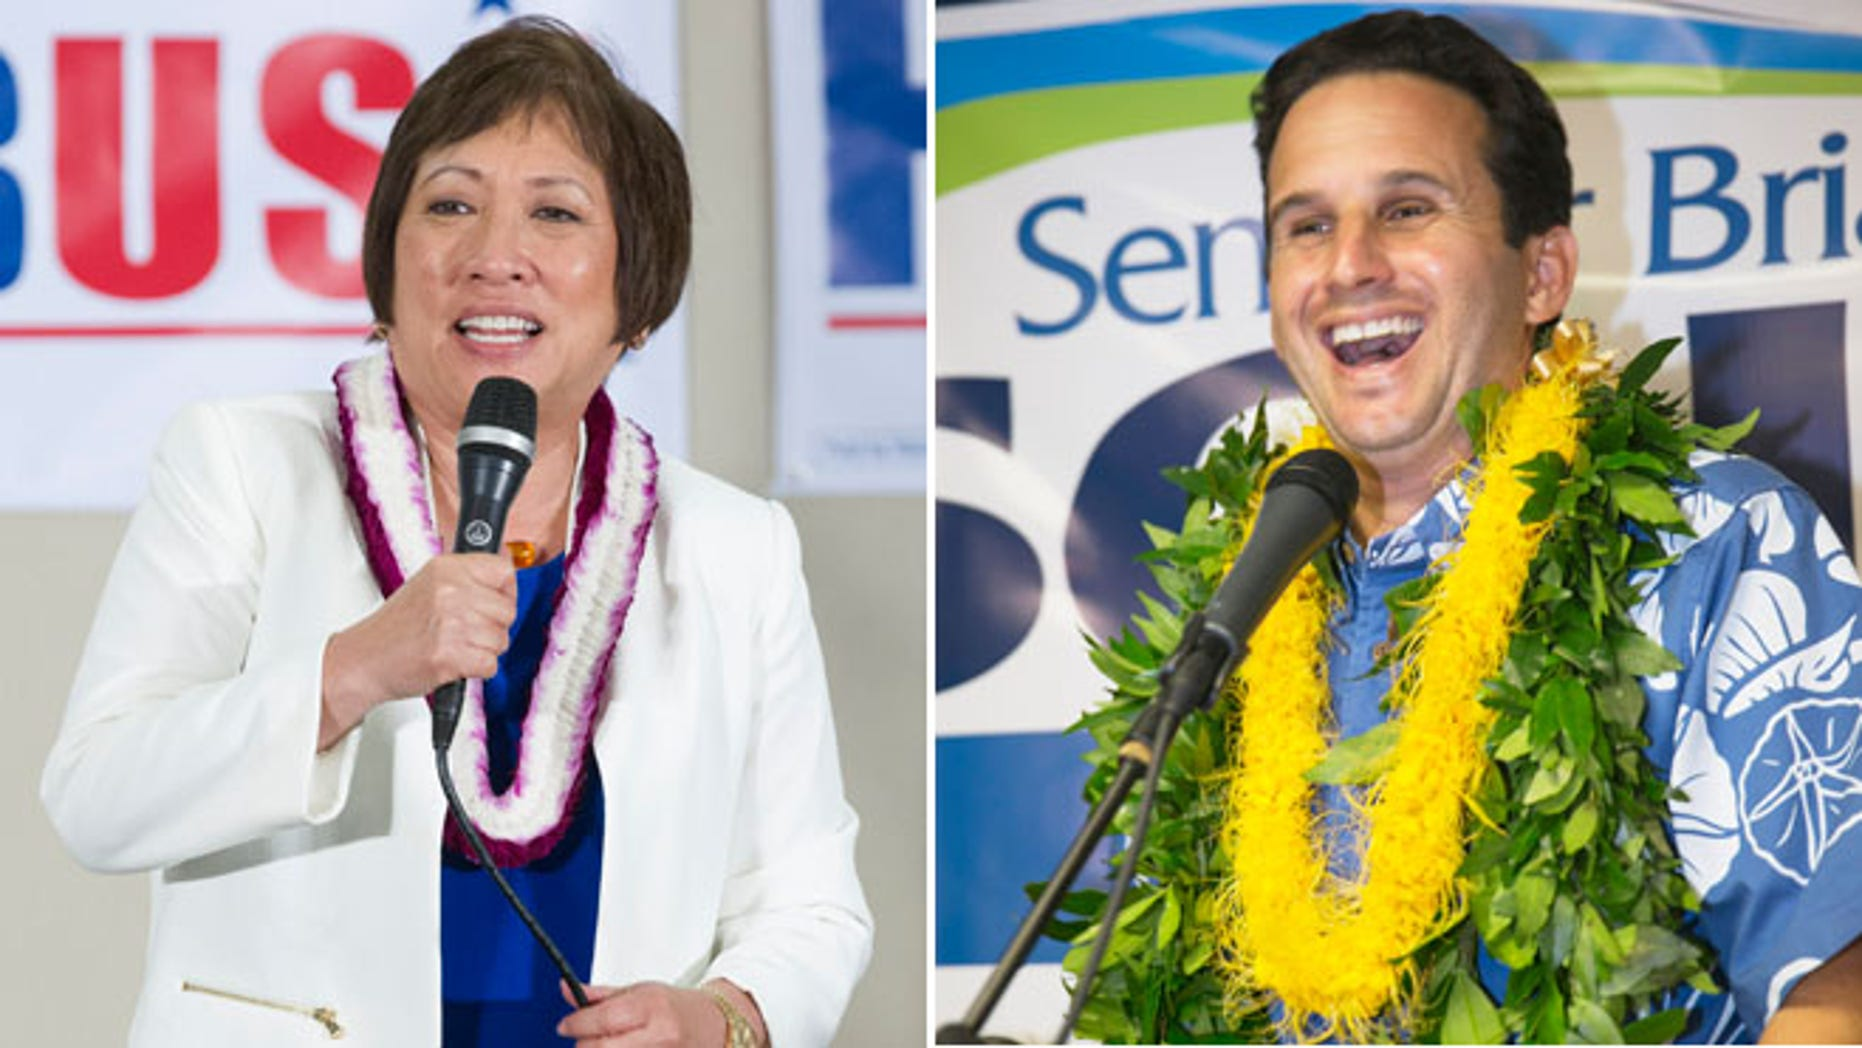 In these Aug. 9, 2014 file photos, U.S. Rep. Colleen Hanabusa, Democrat, from Hawaii's 1st district, addresses her supporters at her campaign headquarters and U.S. Sen. Brian Schatz speaks to supporters at his campaign headquarters in Honolulu.